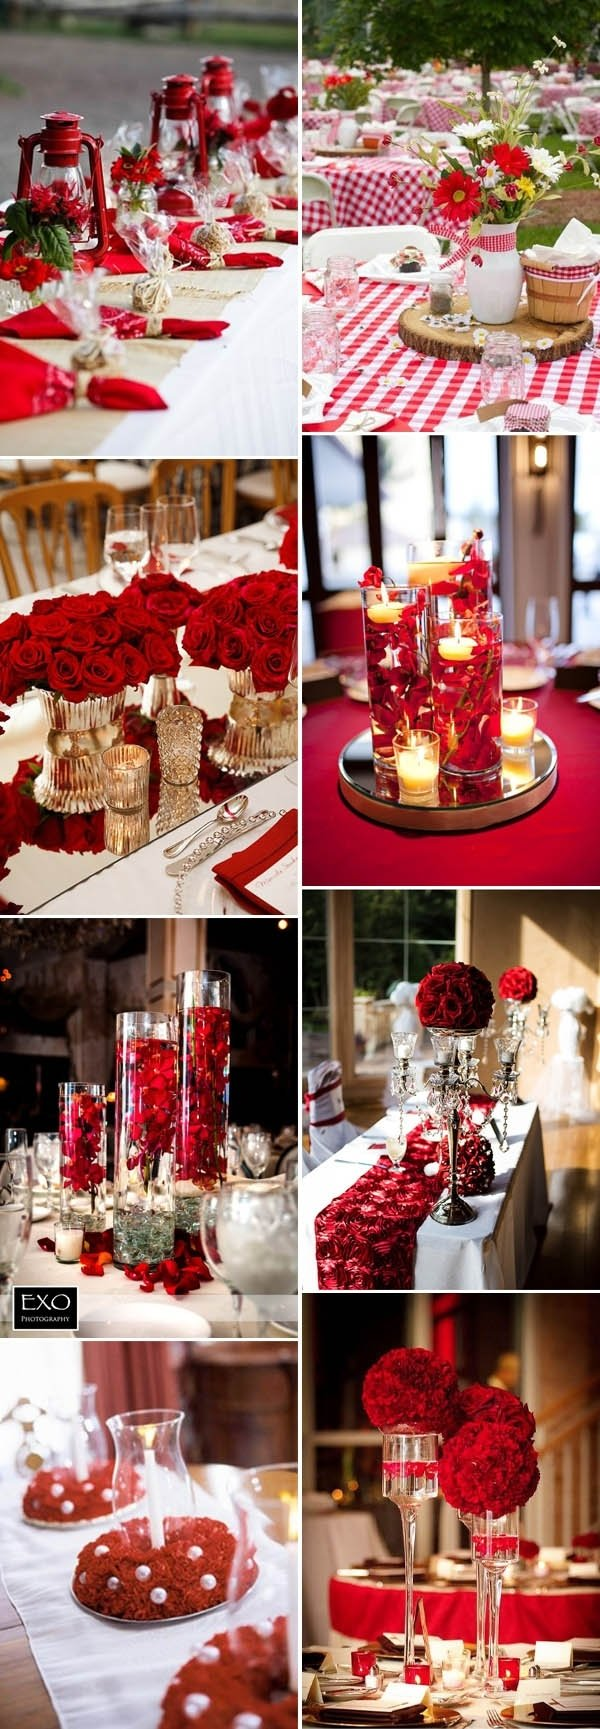 10 Spectacular Red And White Wedding Ideas 40 inspirational classic red and white wedding ideas 1 2020